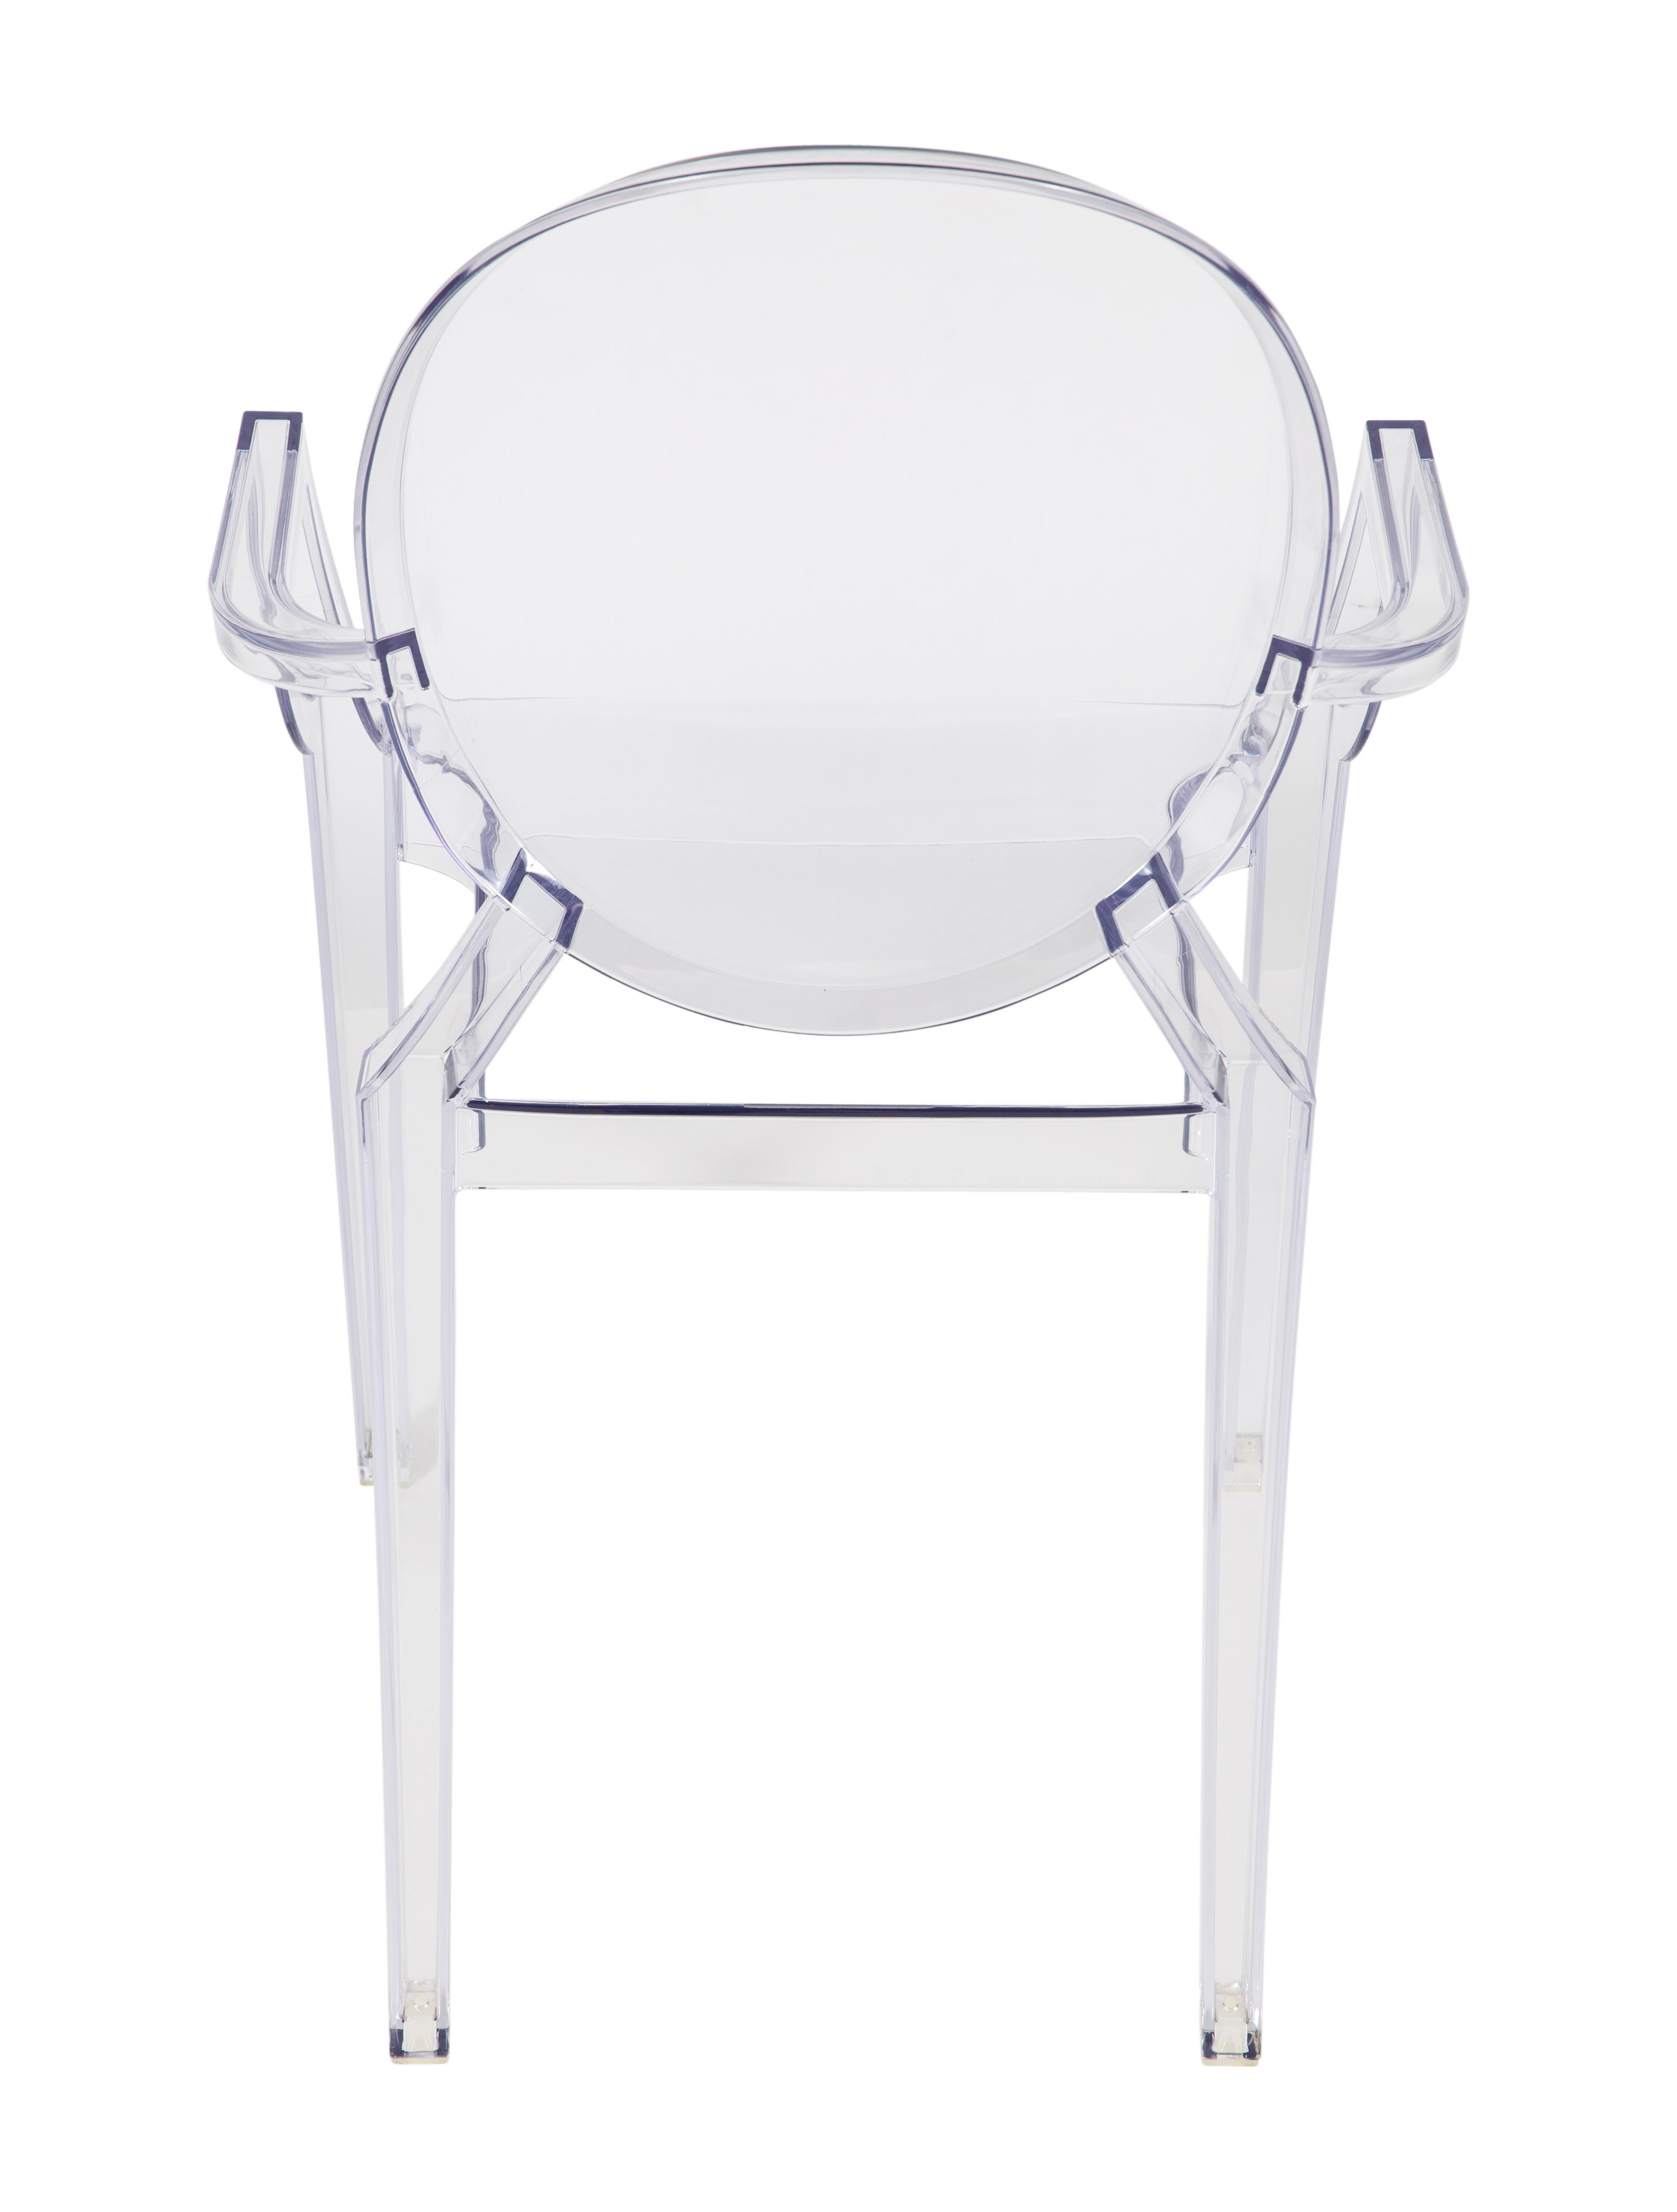 furniture ghost starck eat products chair replica victoria